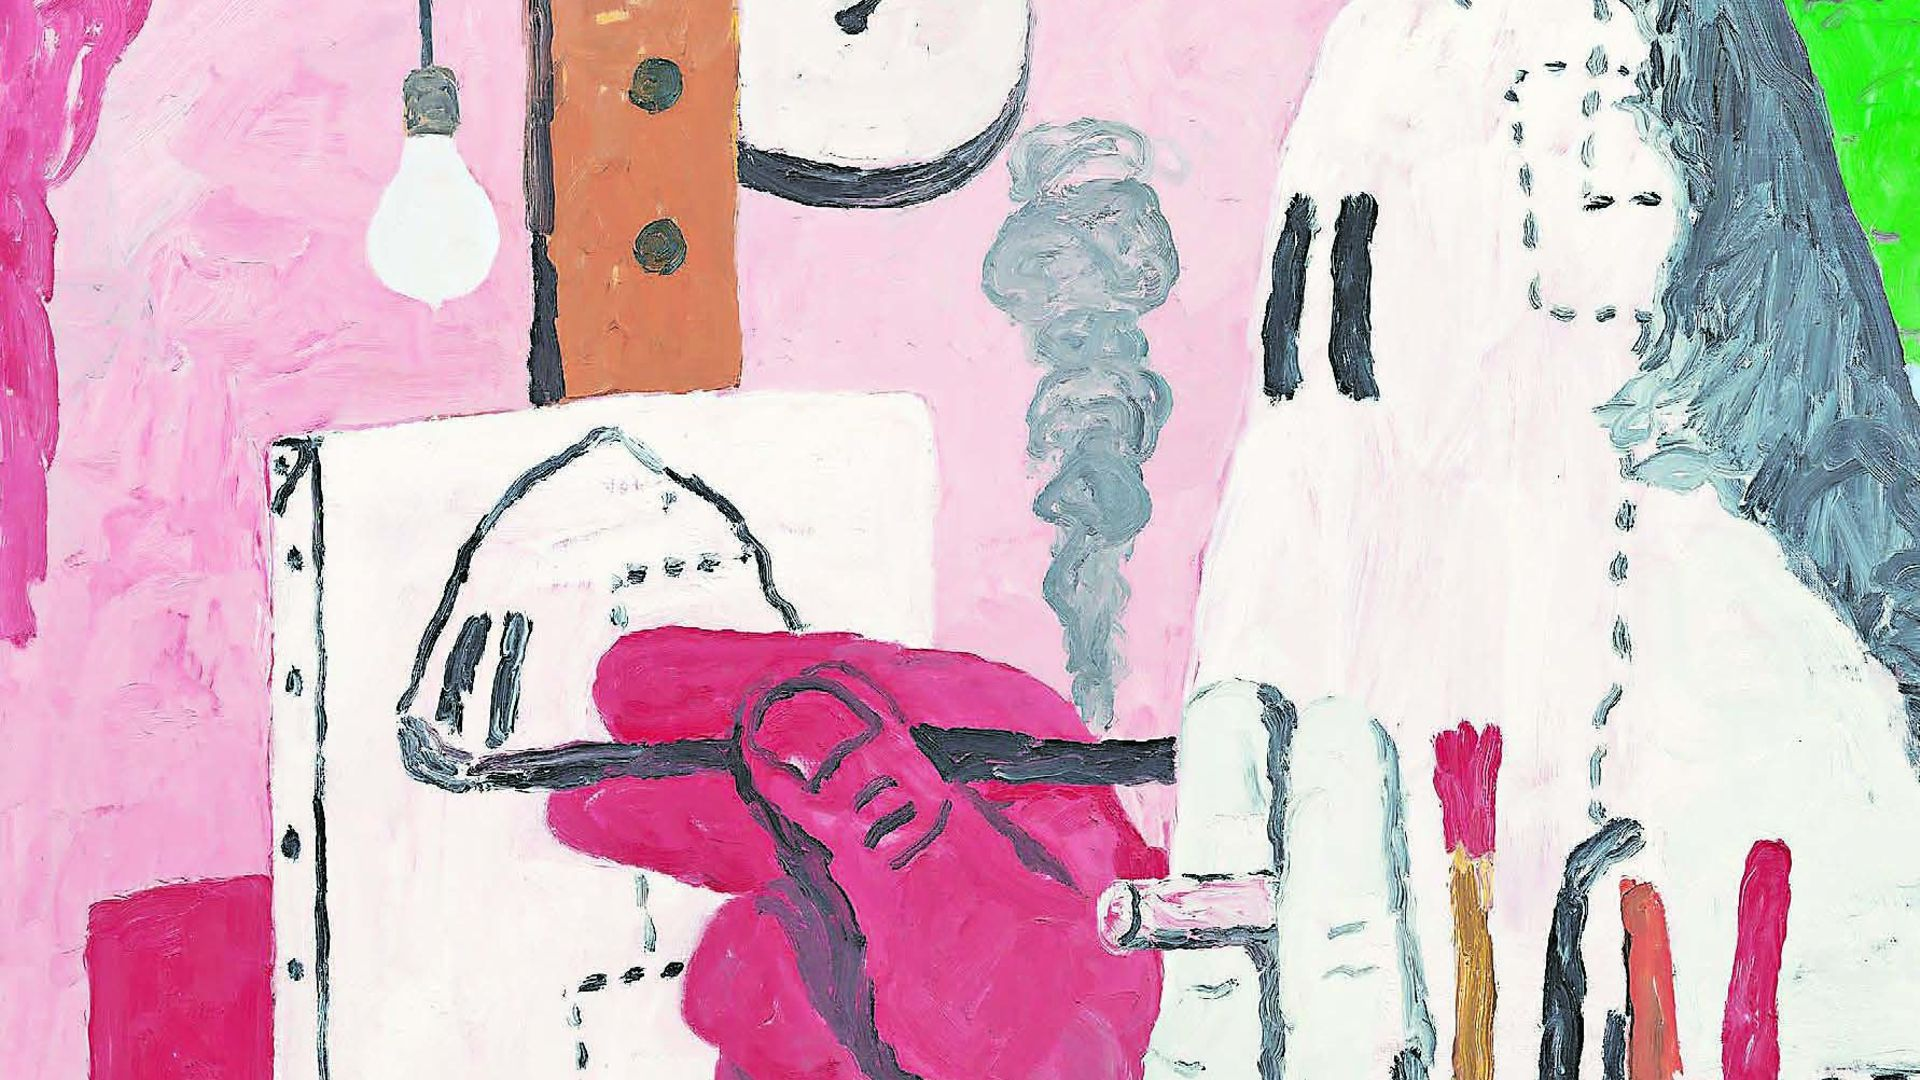 In The Studio Guston (1969) conflates the creative and the destructive, depicting the painter - himself - as a Klansman - Credit: Philip Guston